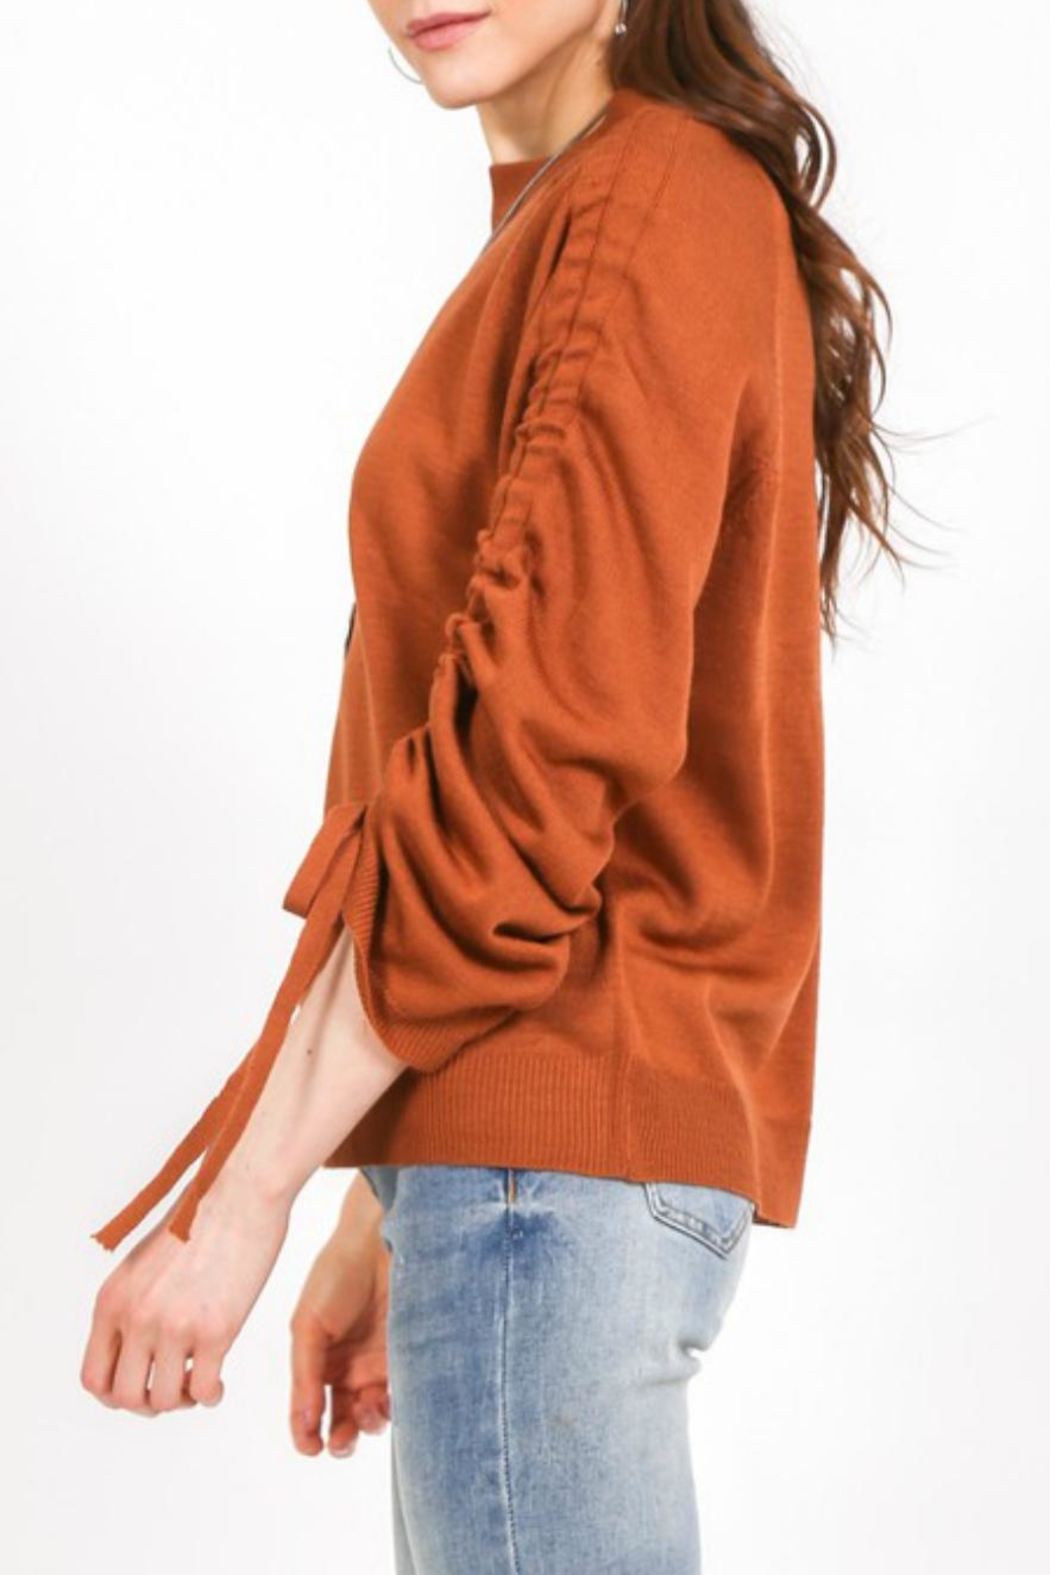 LoveRiche Cinnamon Ruched-Sleeve Sweater - Front Full Image